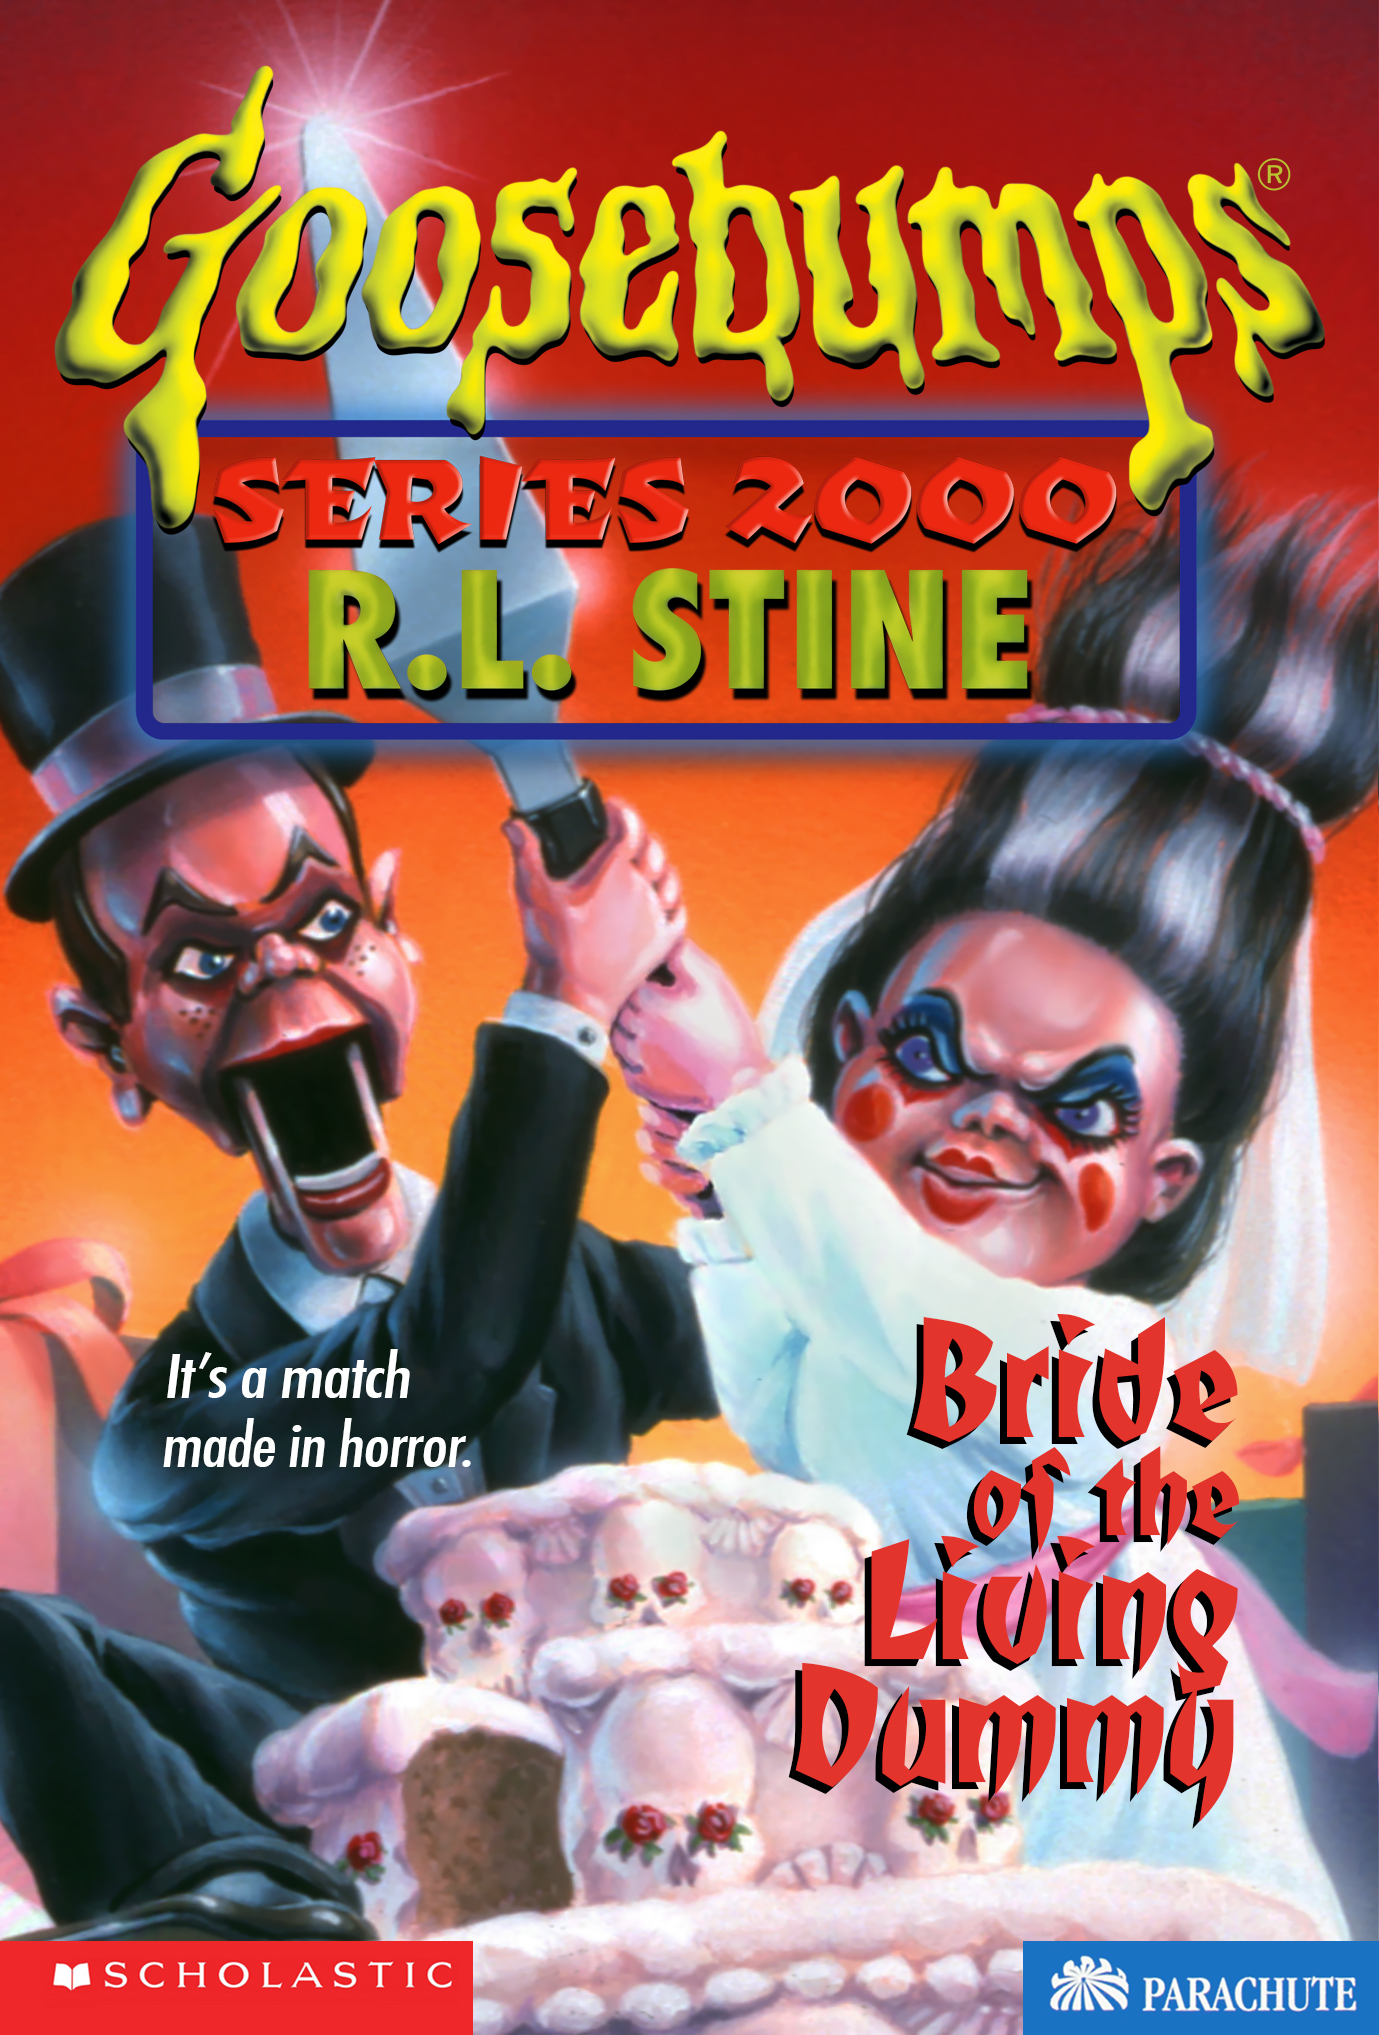 Slappy the dummy goosebumps wiki fandom powered by wikia in bride of the living dummy a girl named jillian zinman takes her twin sisters katie and amanda plus their life sized doll mary ellen who they treat ccuart Gallery